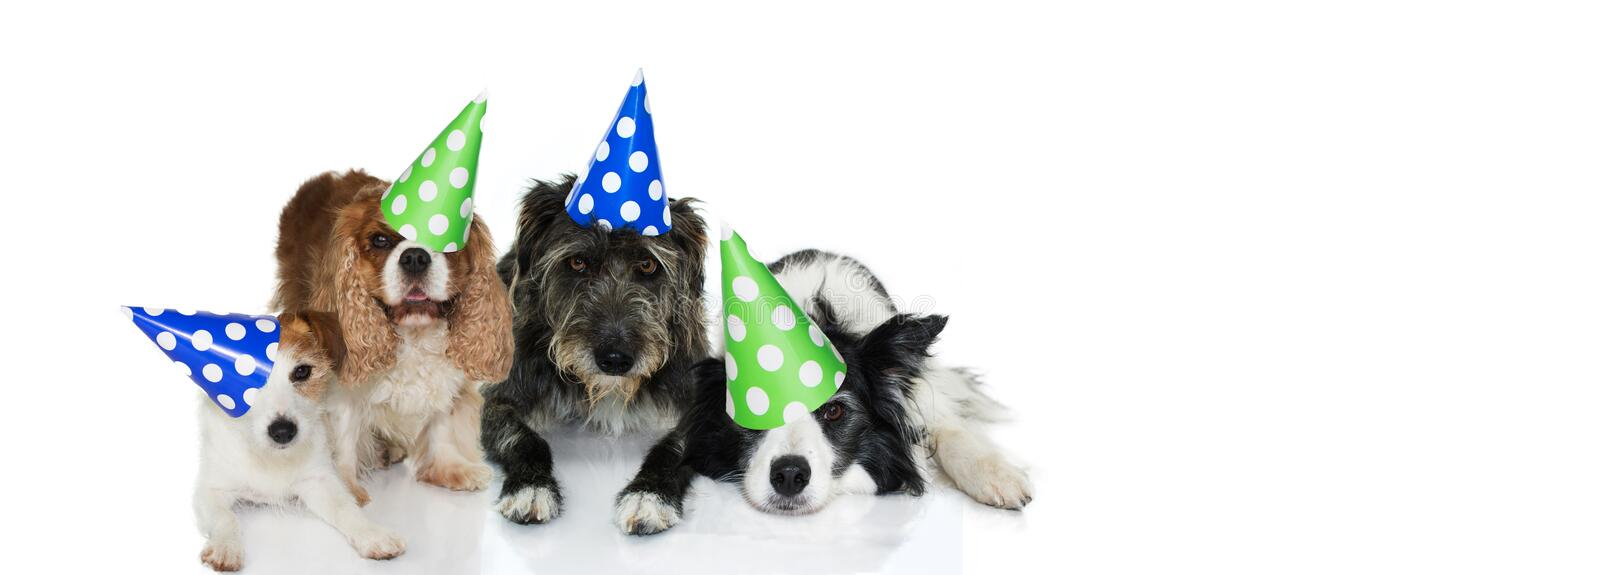 BANNER PET PARTY CELEBRATION. FUNNY GROUP OF FOUR DOGS WEARING POLKA DOT HAT DOR NEW YEAR, BIRTHDAY OR NEW YEAR. ISOLATED ON WHITE stock photography